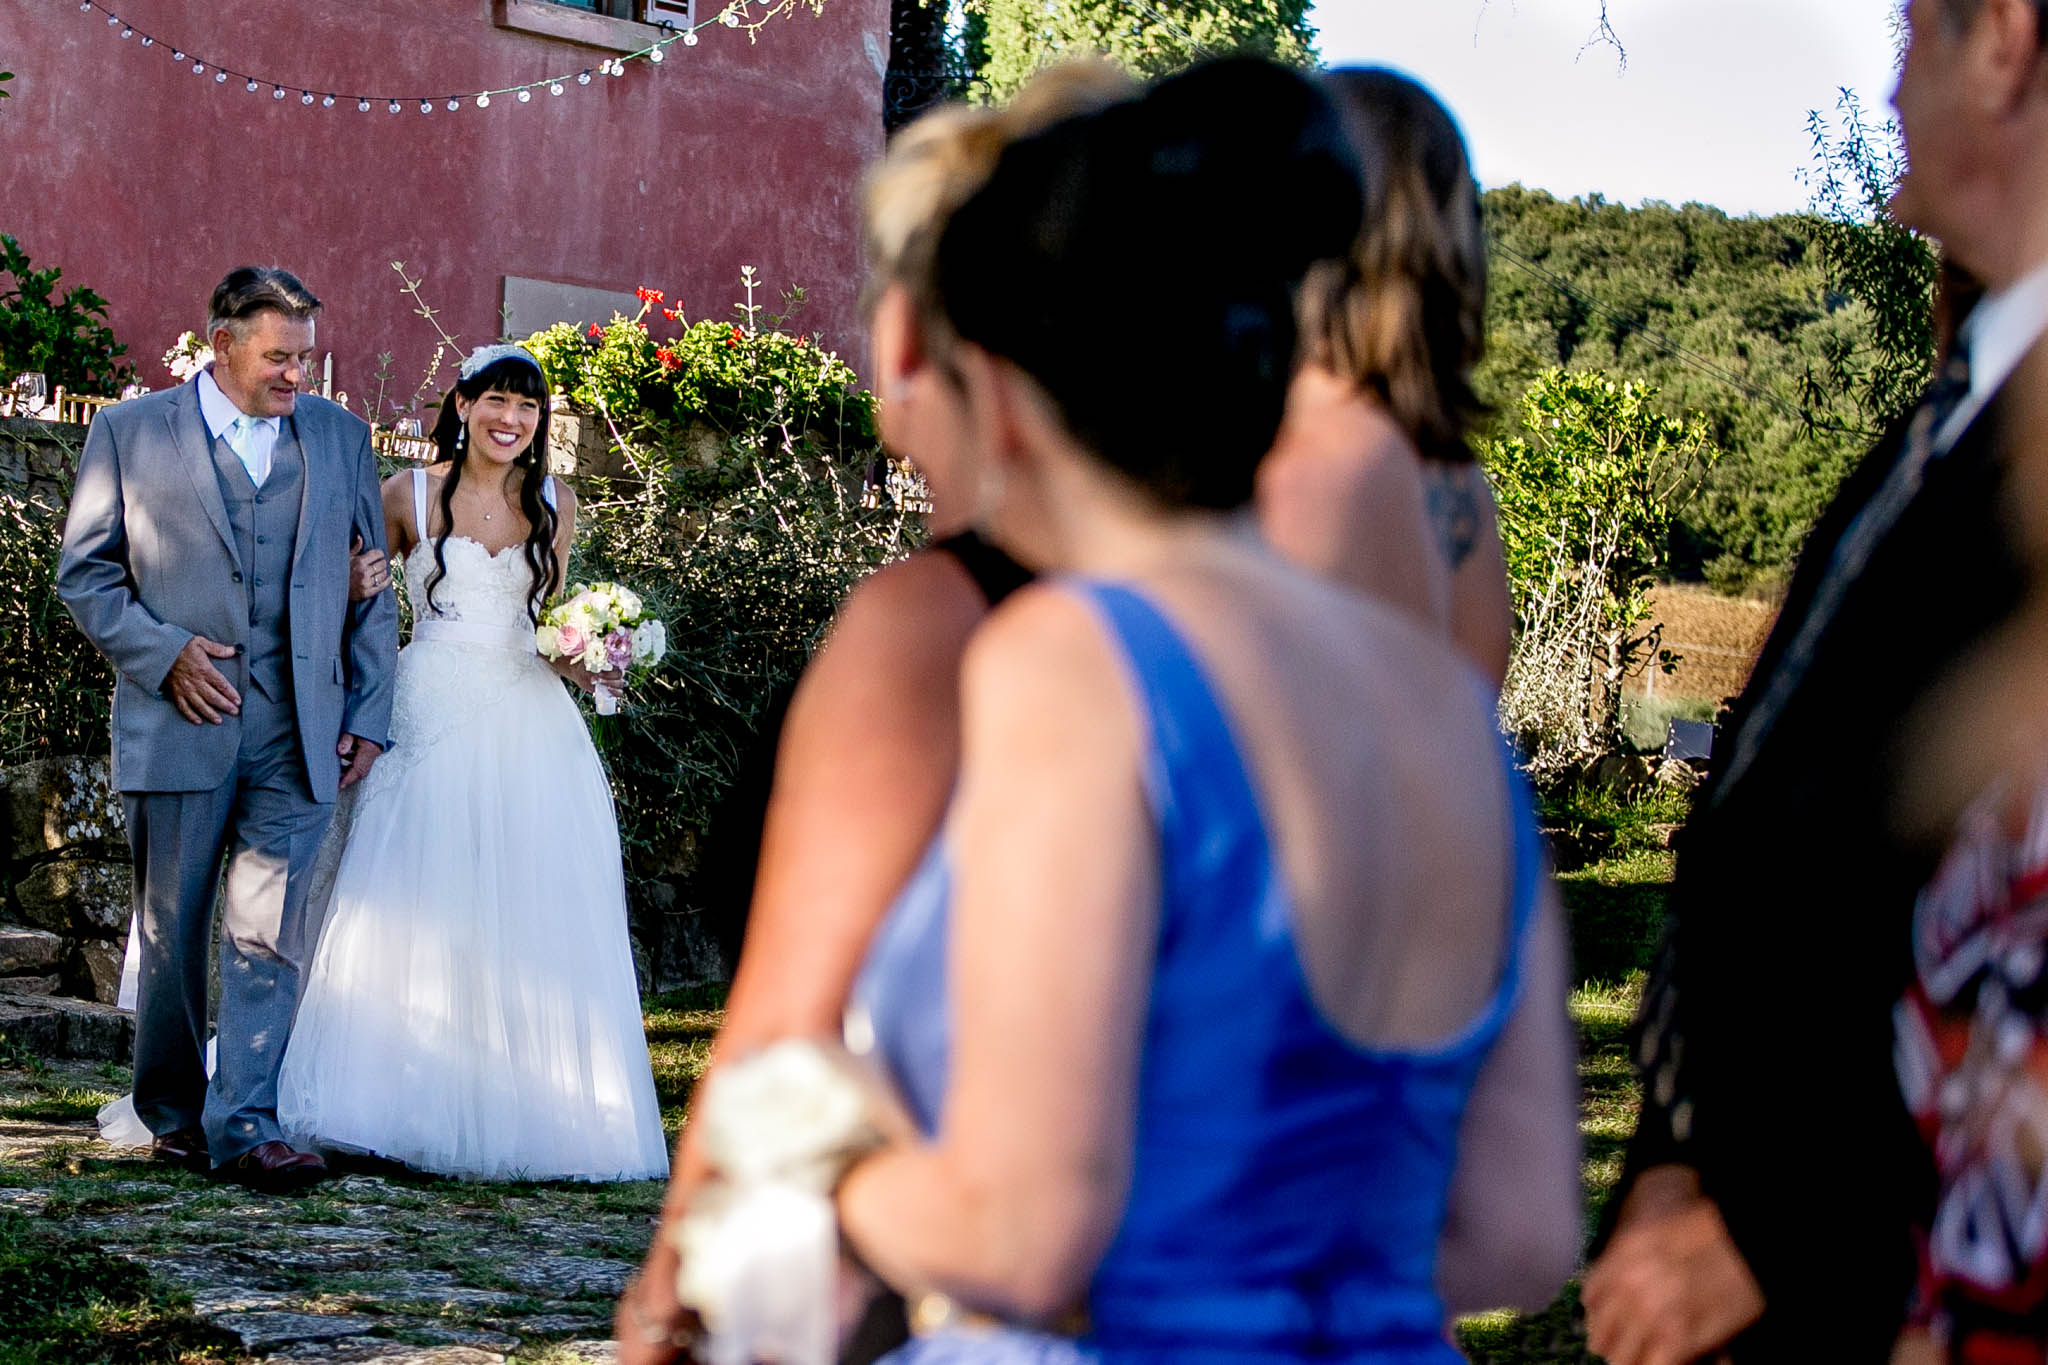 Bride walking into ceremony at Villa Tre Grazie in Umbria Italy near Todi